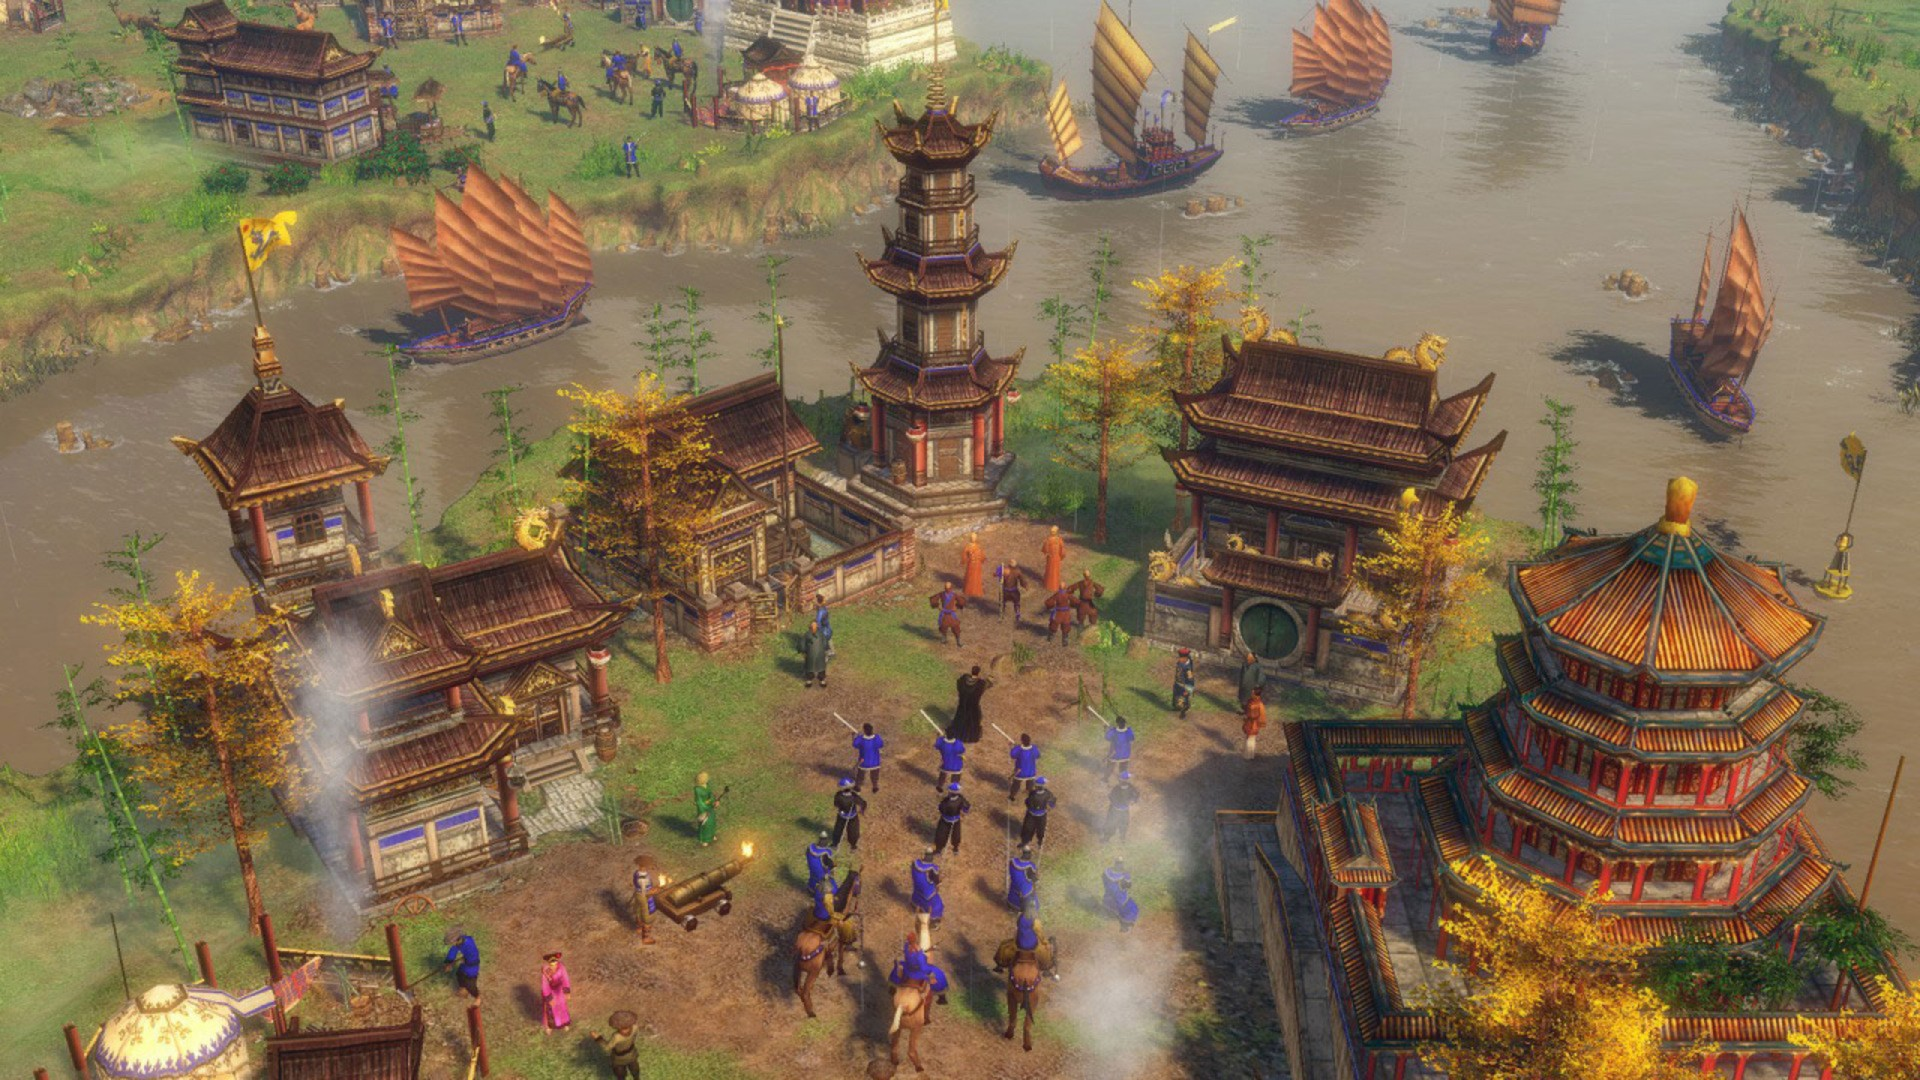 1920x1080 > Age Of Empires III Wallpapers